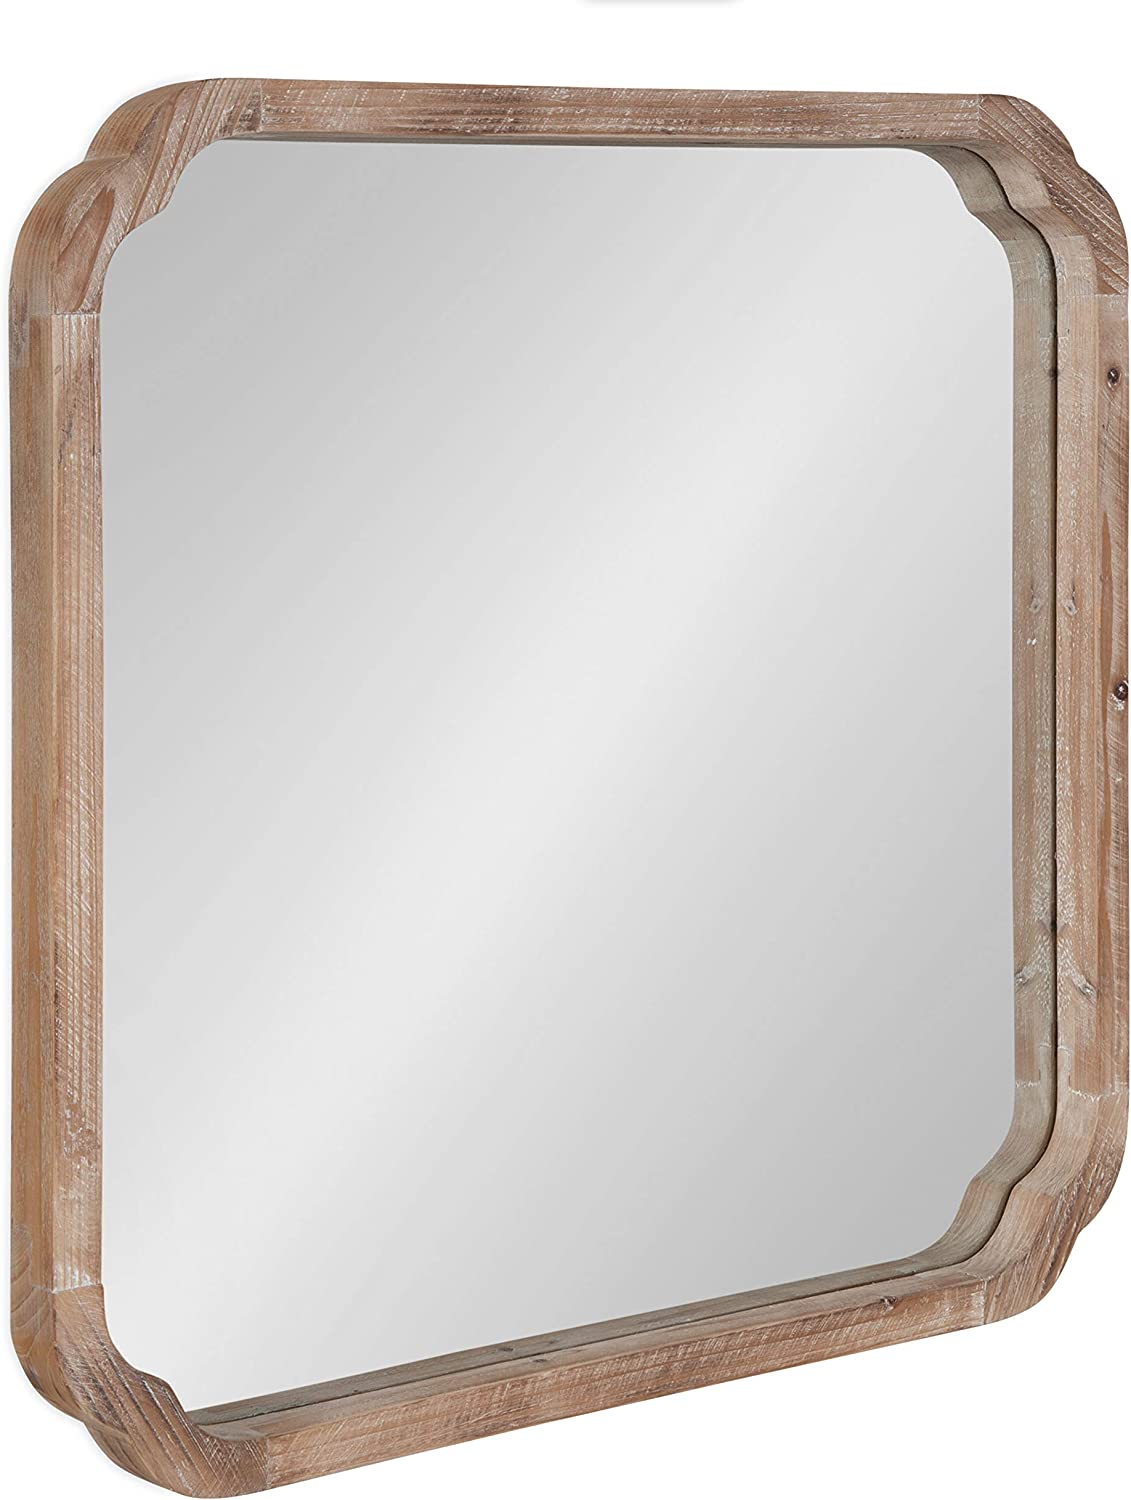 """Kate and Laurel Marston Rustic Square Wall Mirror, 24"""" x 24"""", Natural Wood, Decorative Farmhouse-Inspired Wood Wall Decor"""